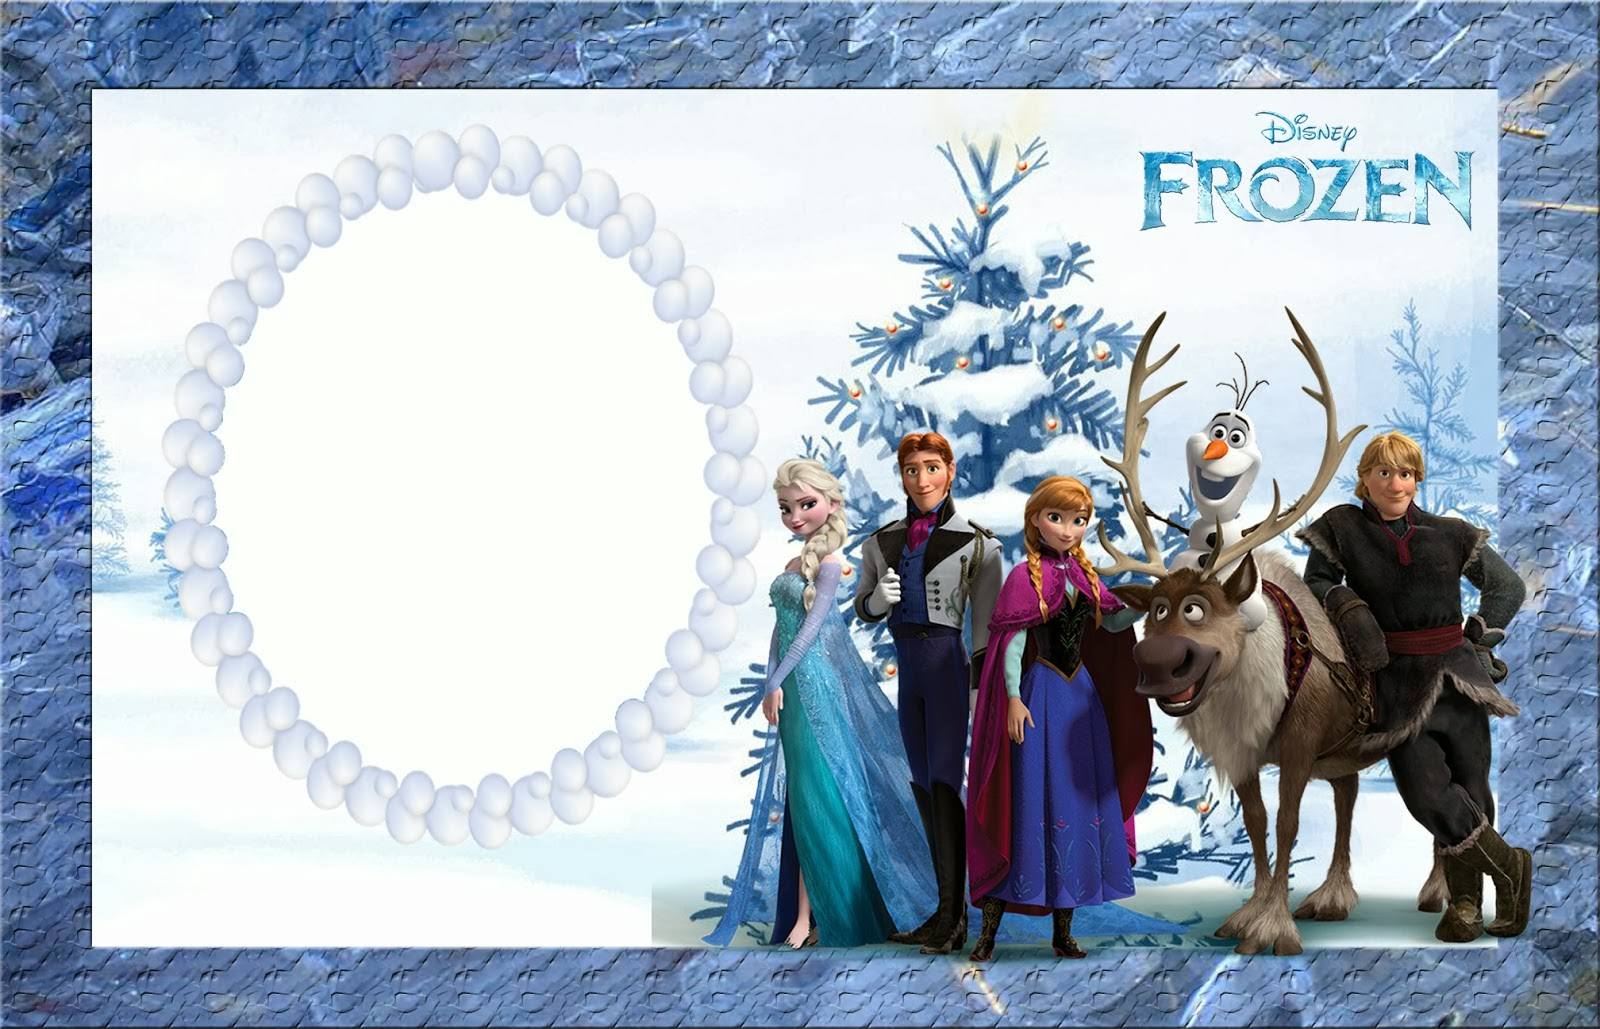 It's just an image of Free Printable Frozen Invitations Templates intended for tarpaulin design